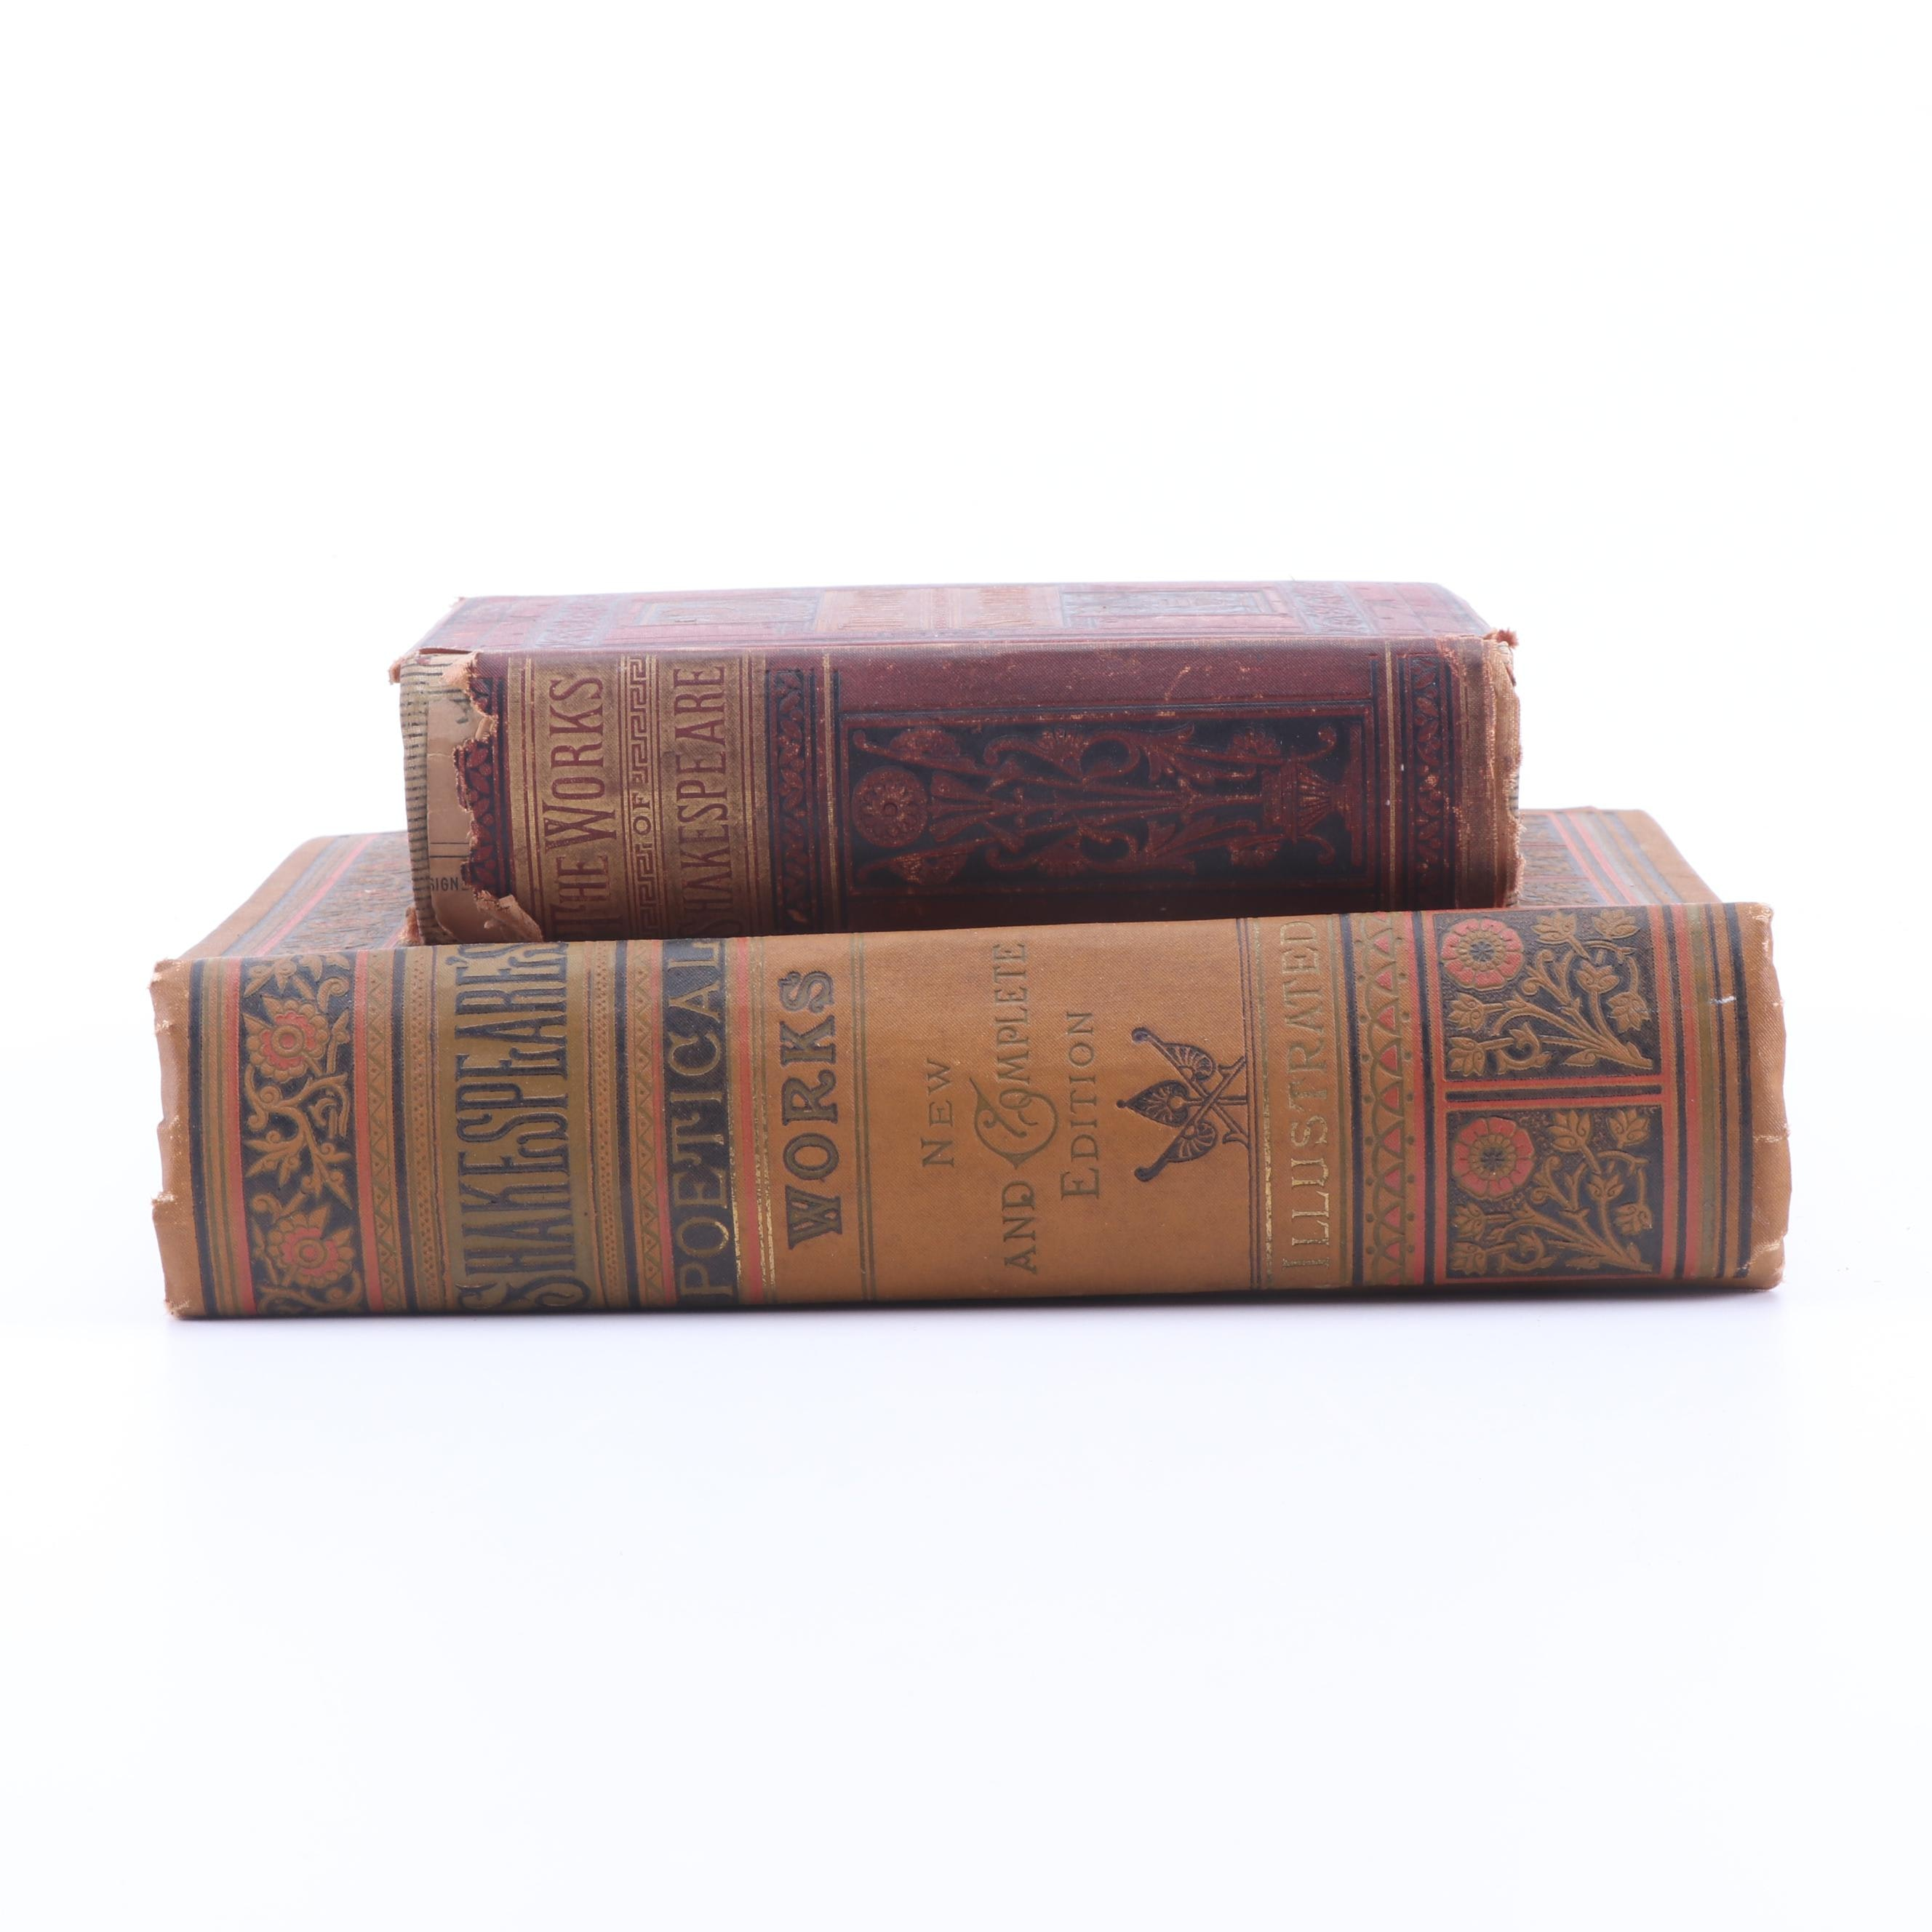 Late 19th Century Works of William Shakespeare